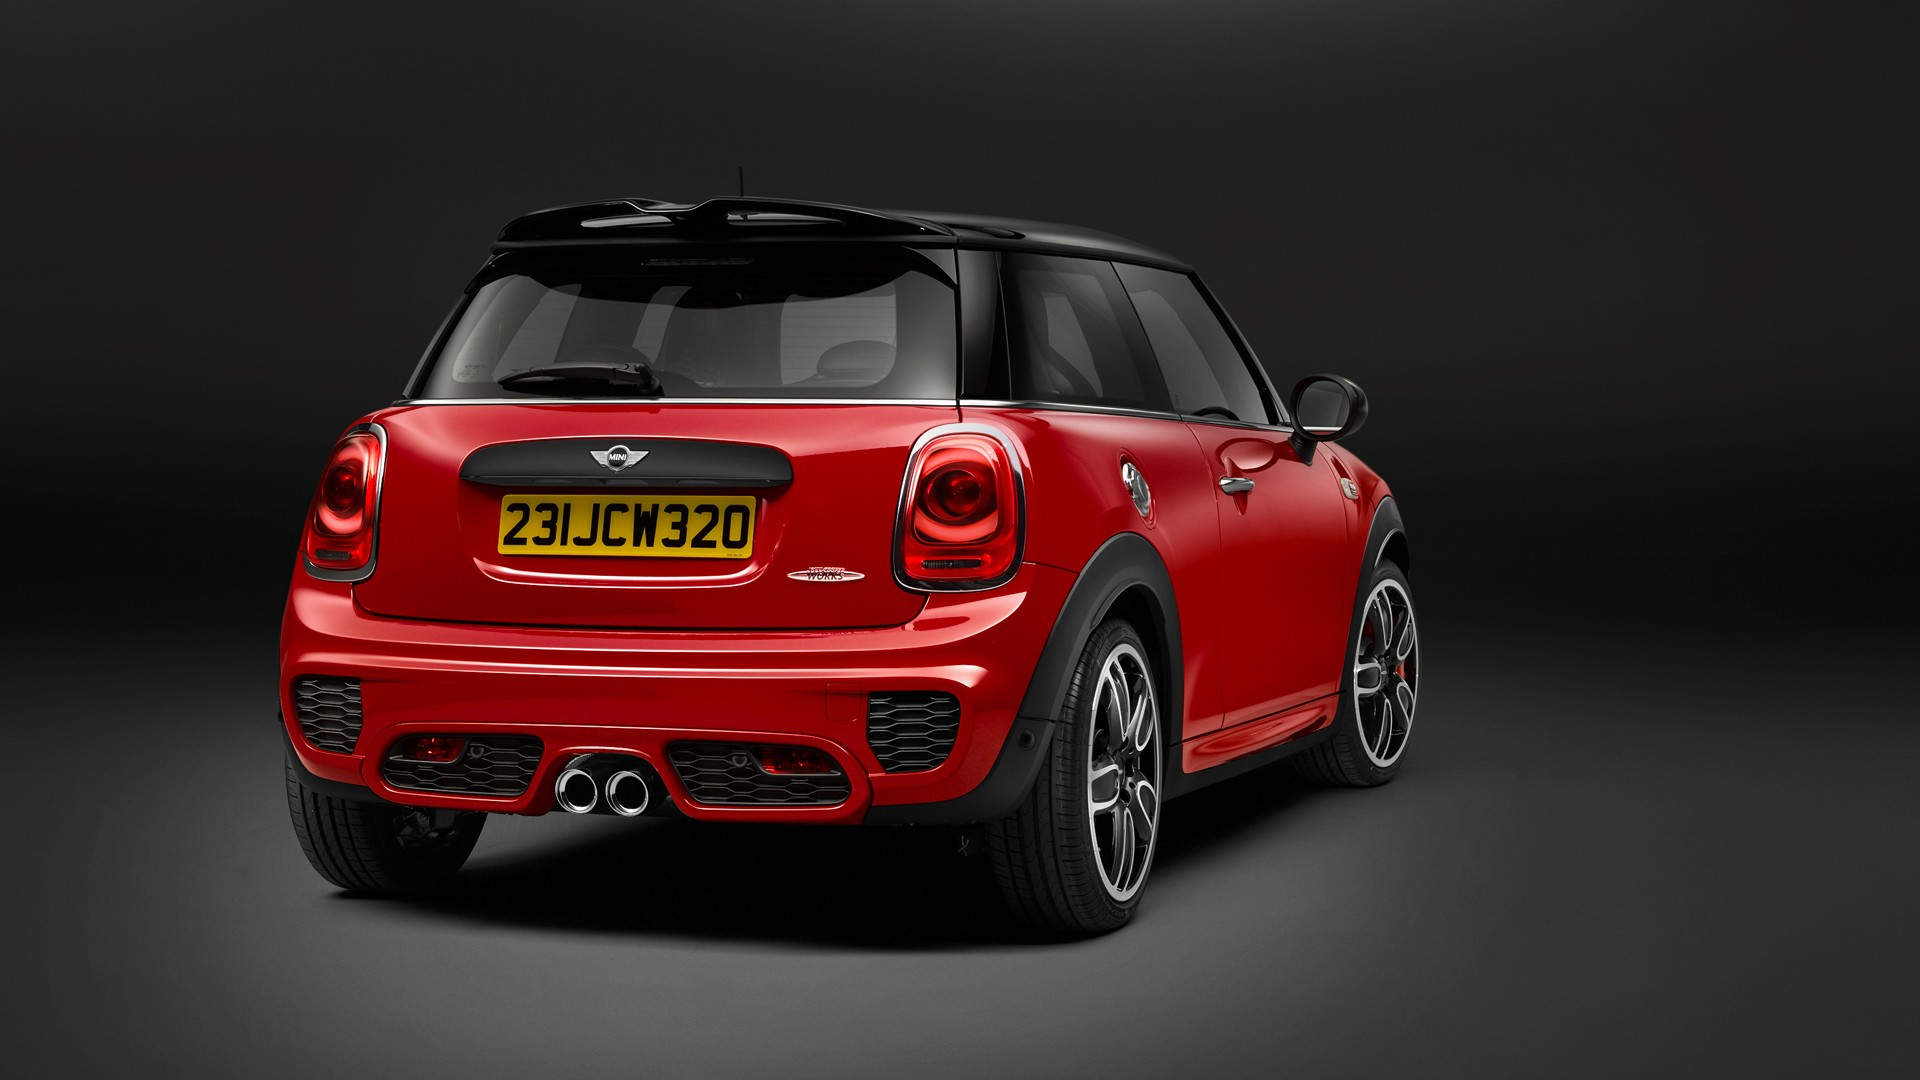 Car 5760x1080 Wallpaper Mini Jcw Car Red Cars Wallpapers Hd Desktop And Mobile